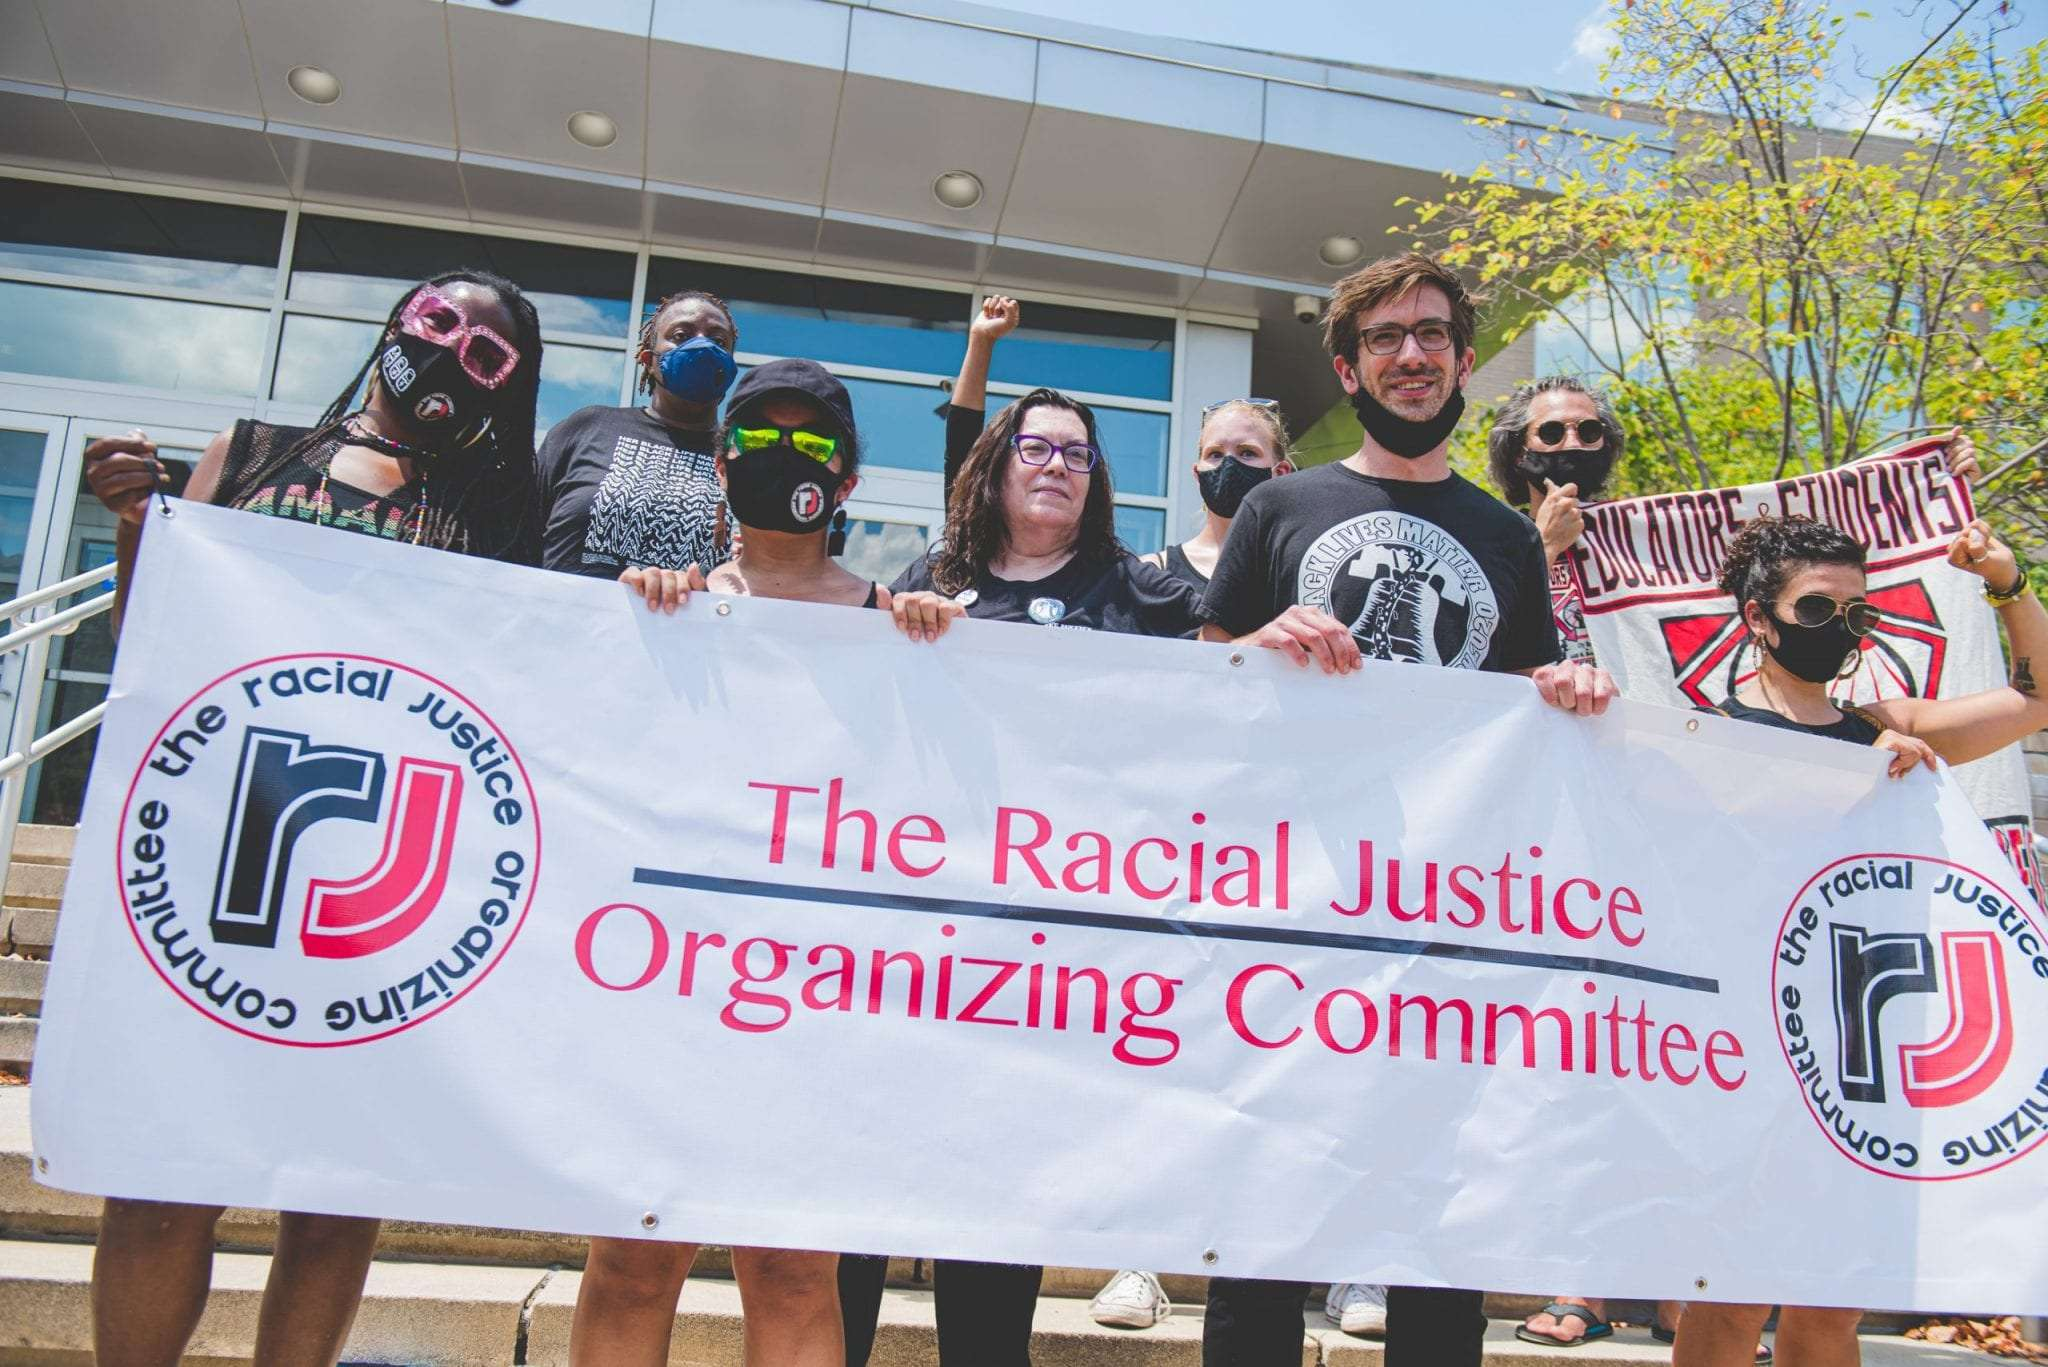 The racial Justice Organizing Committee protest